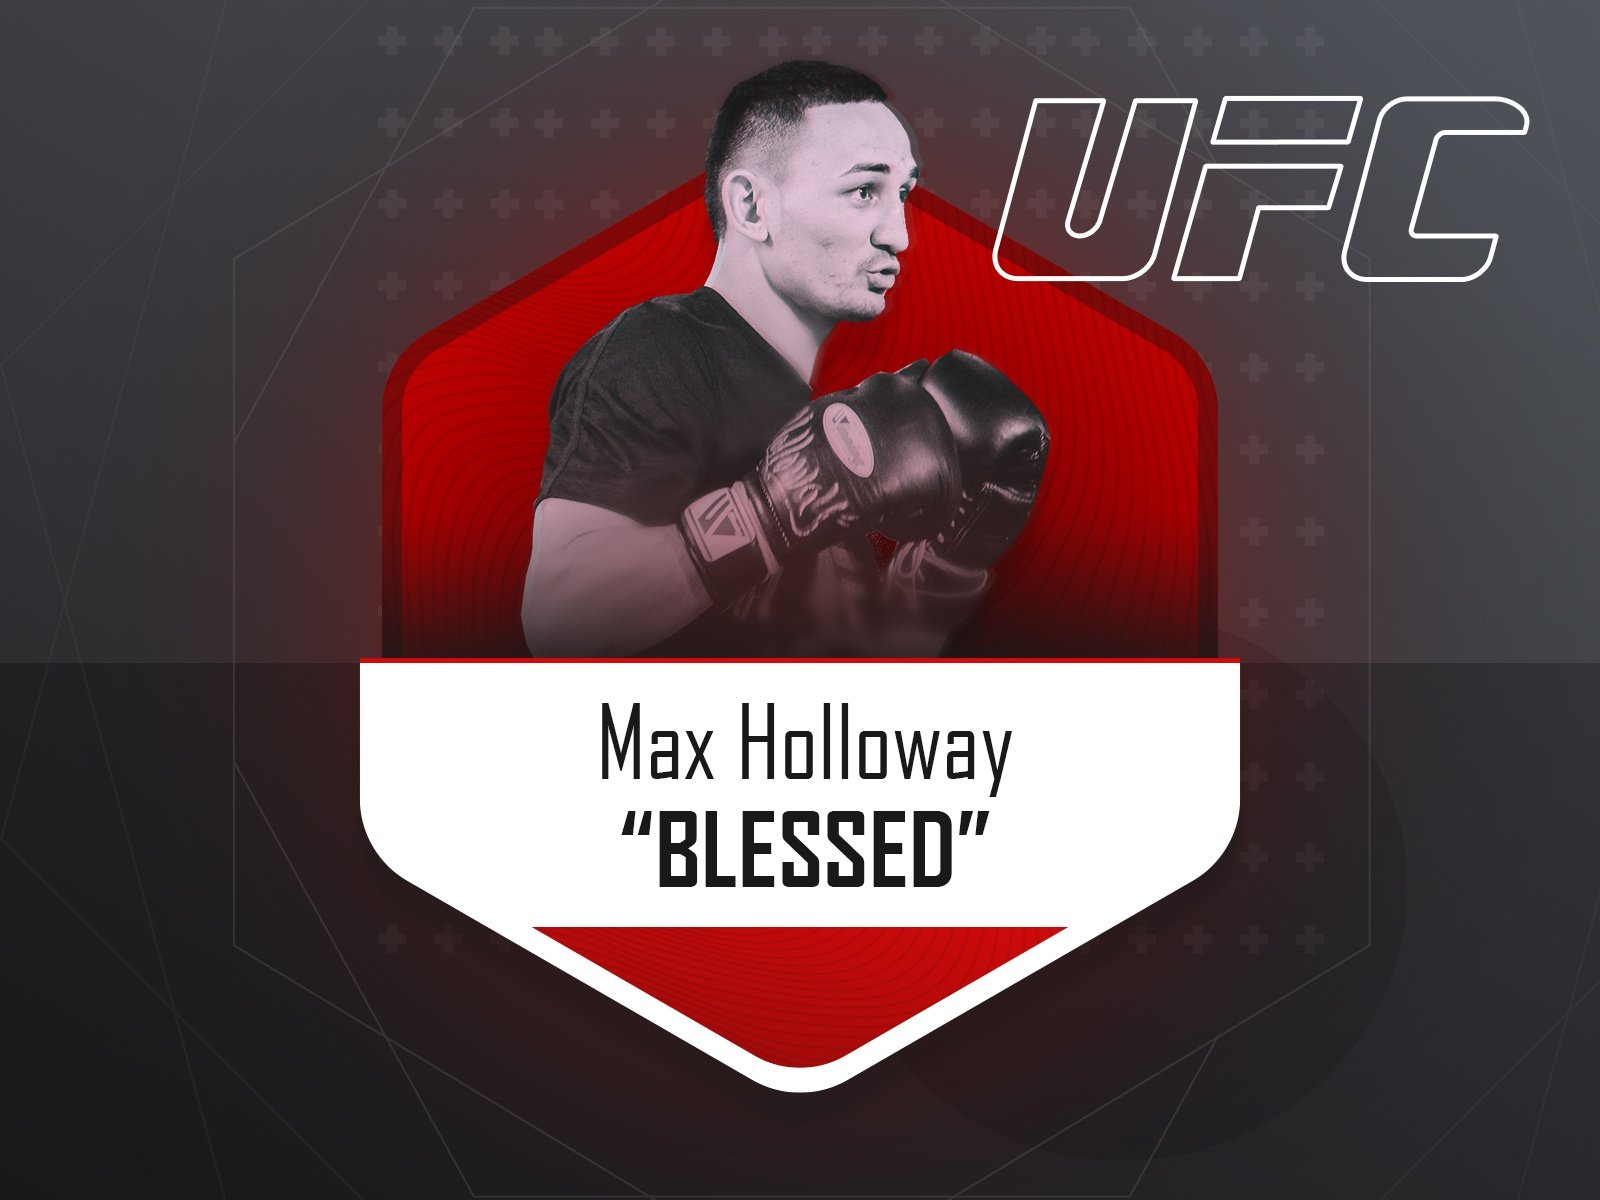 Max Holloway - UFC fighter